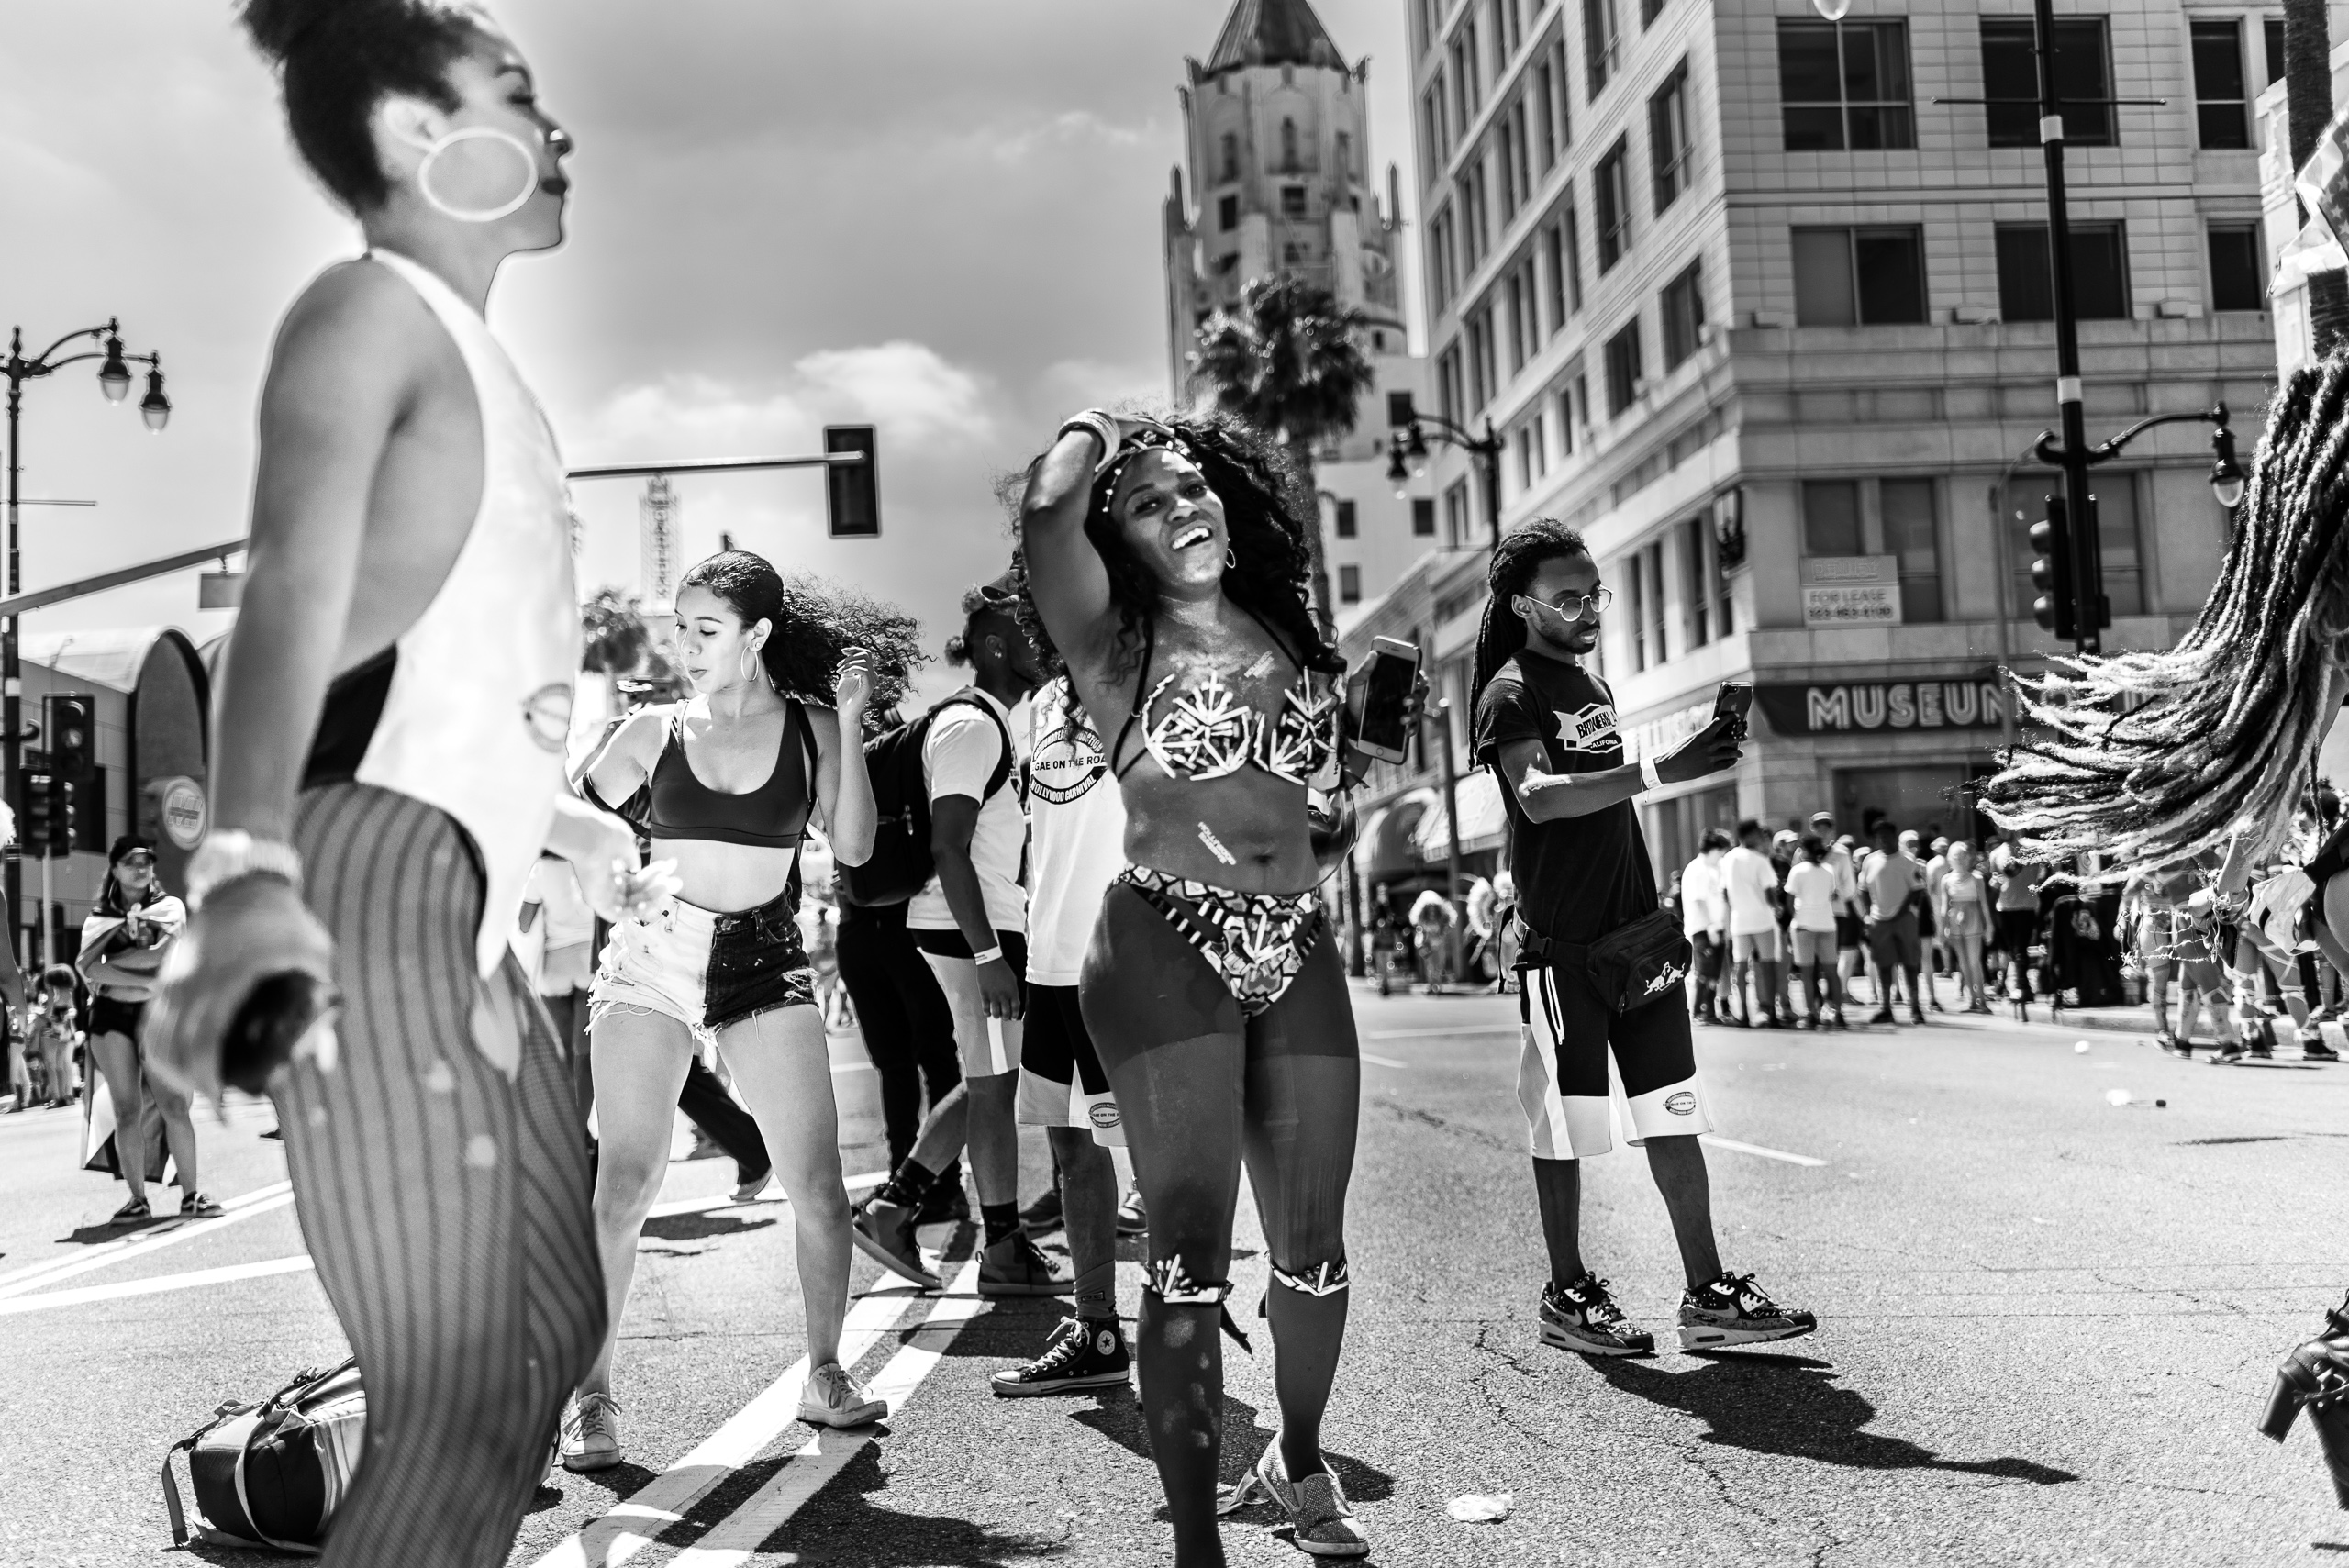 dancers from the 2018 Hollywood Carnival Parade stand, dance, and mill about in the center of the street on Hollywood Blvd